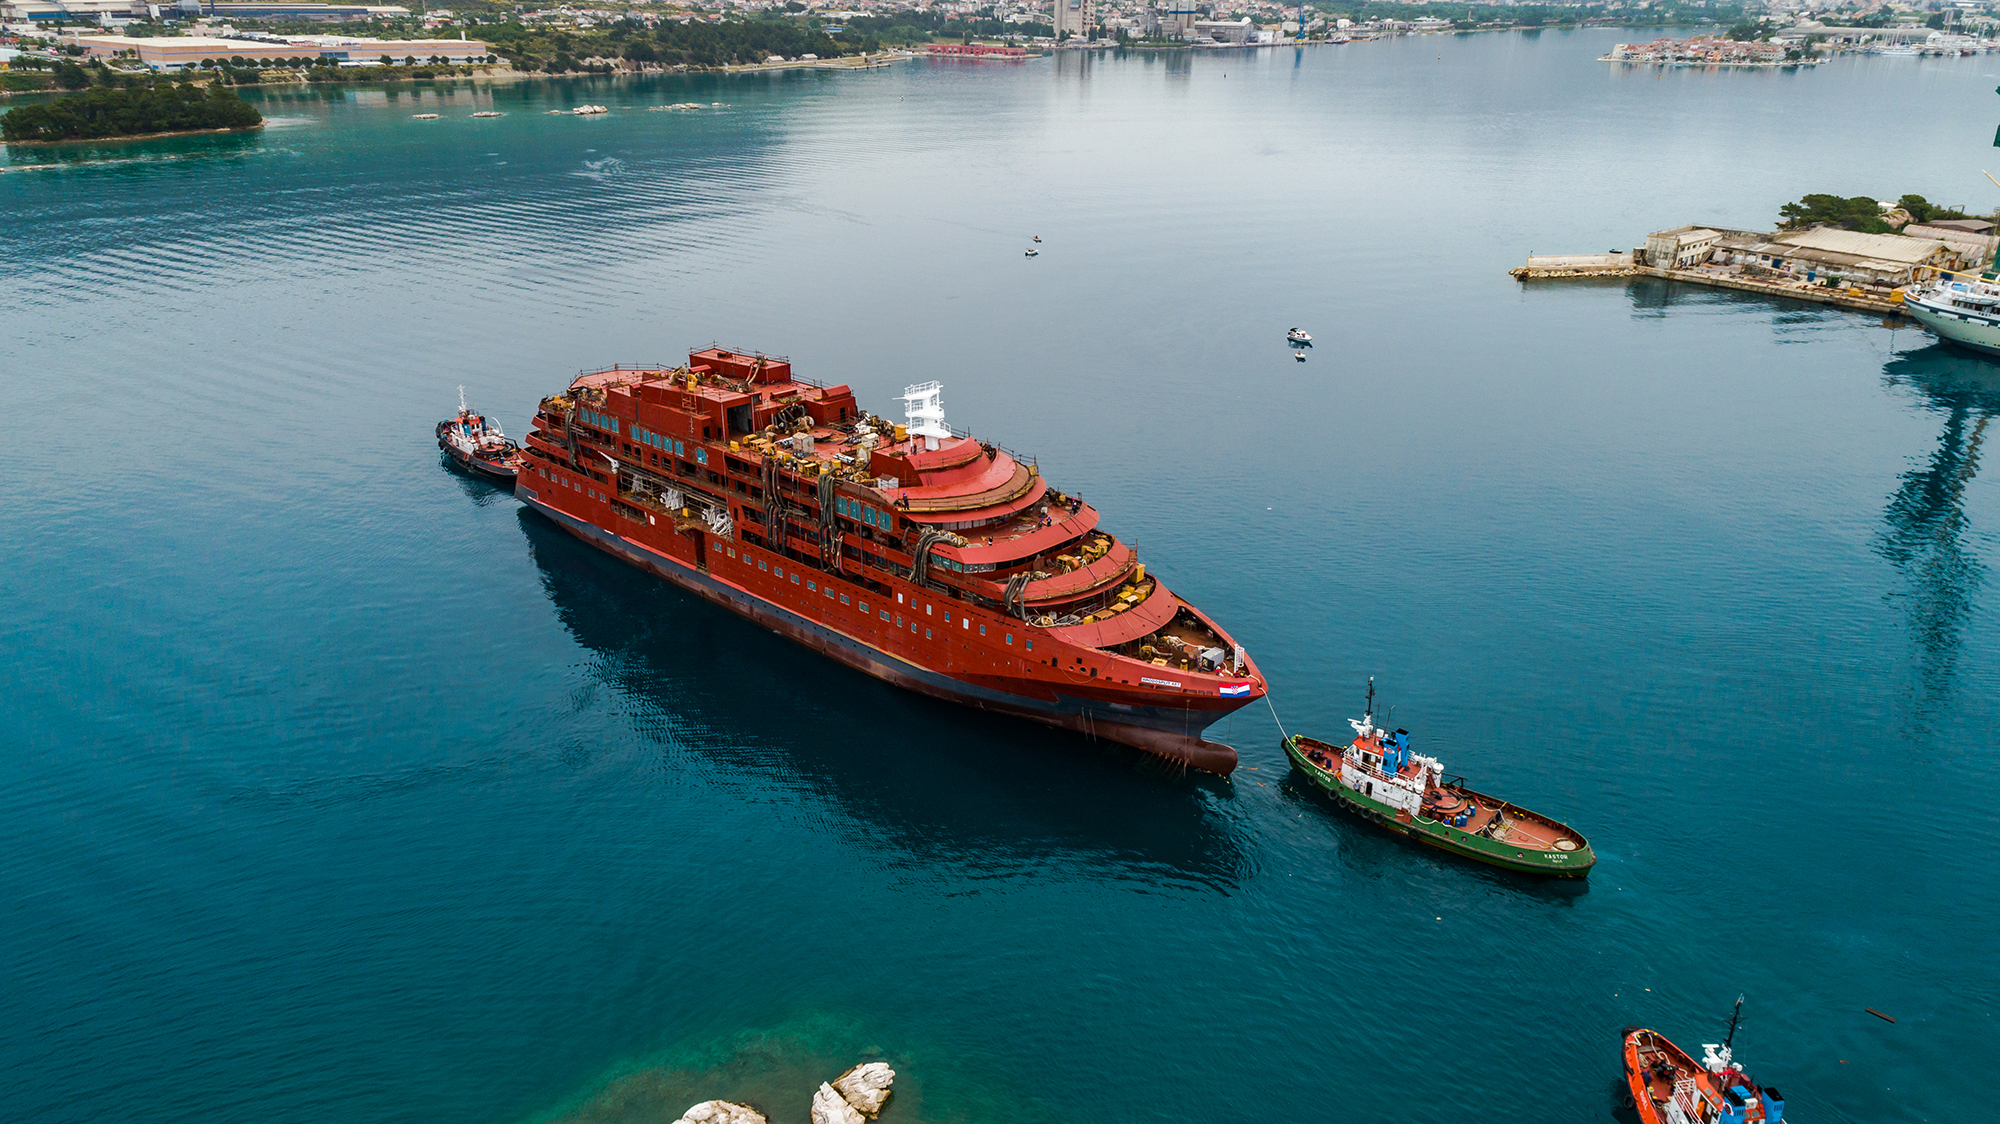 Aerial photo of Ultramarine in the water after its launch from slipway in Split, Croatia.